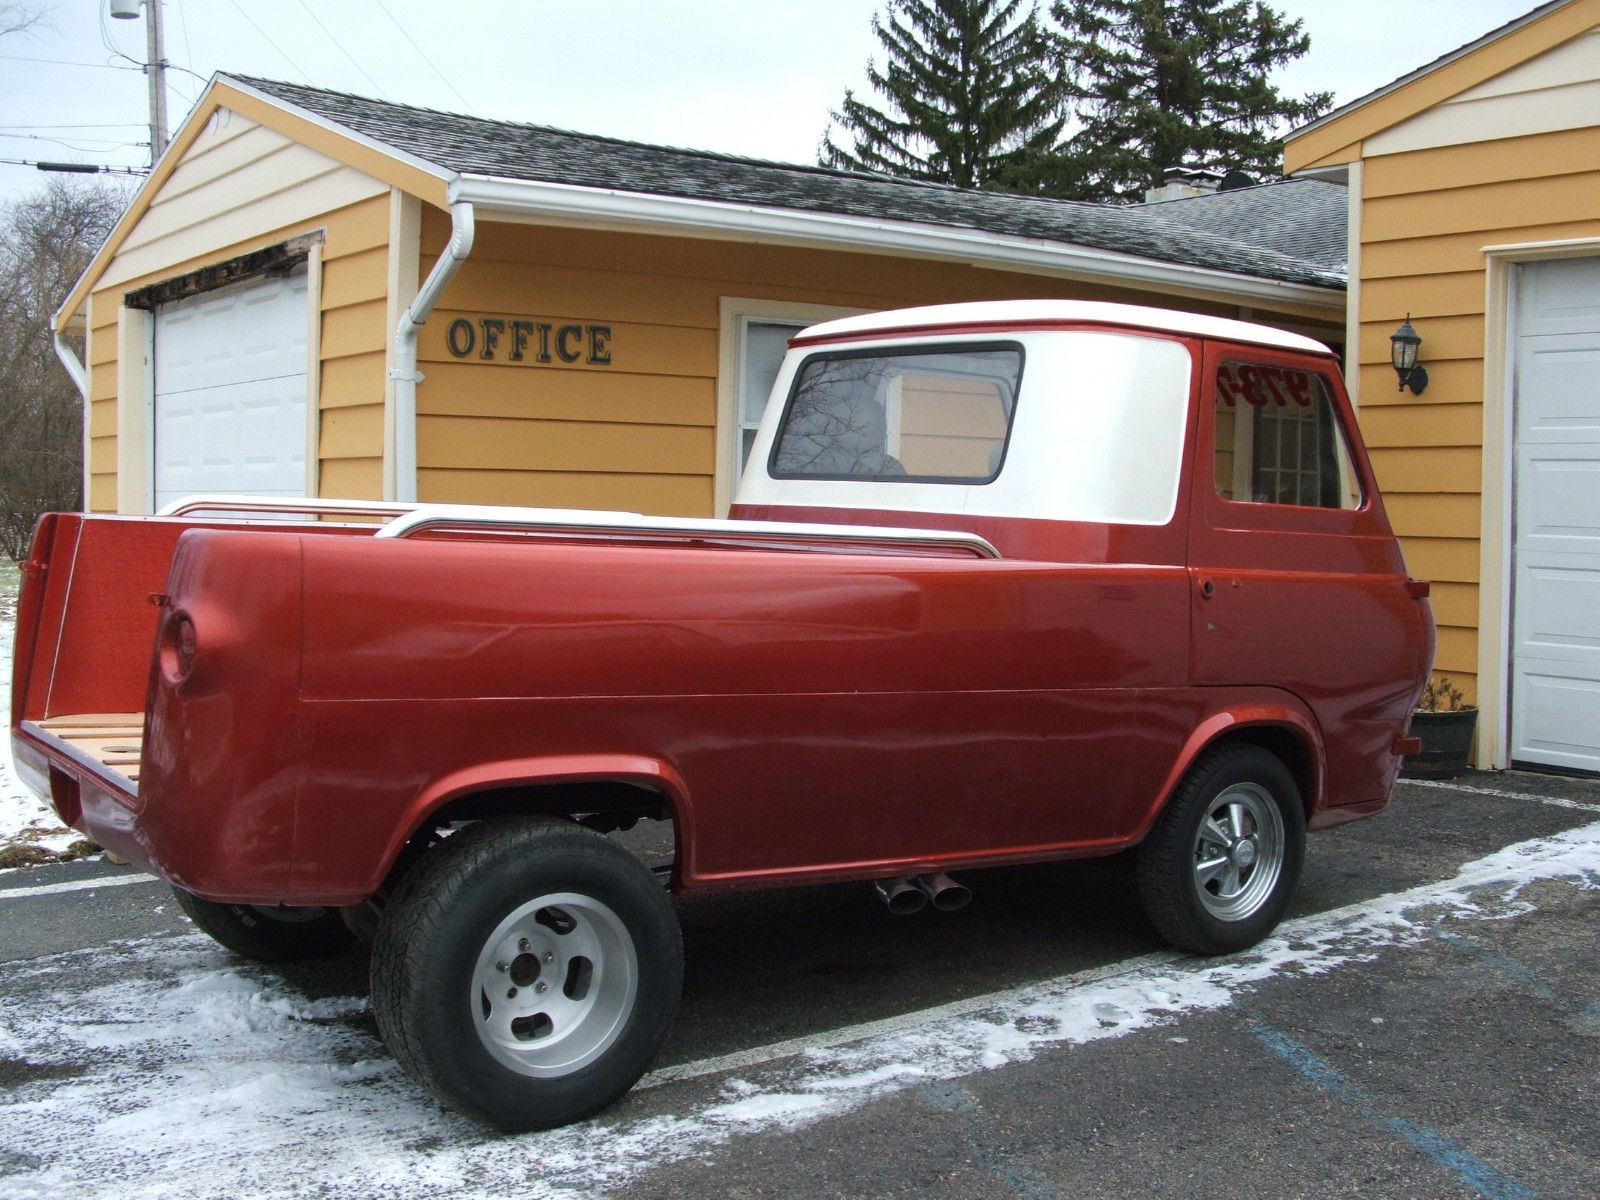 Ford Econoline Truck For Sale >> 1961 FORD ECONOLINE PICKUP SHOP TRUCK GASSER - Classic Ford Other Pickups 1961 for sale